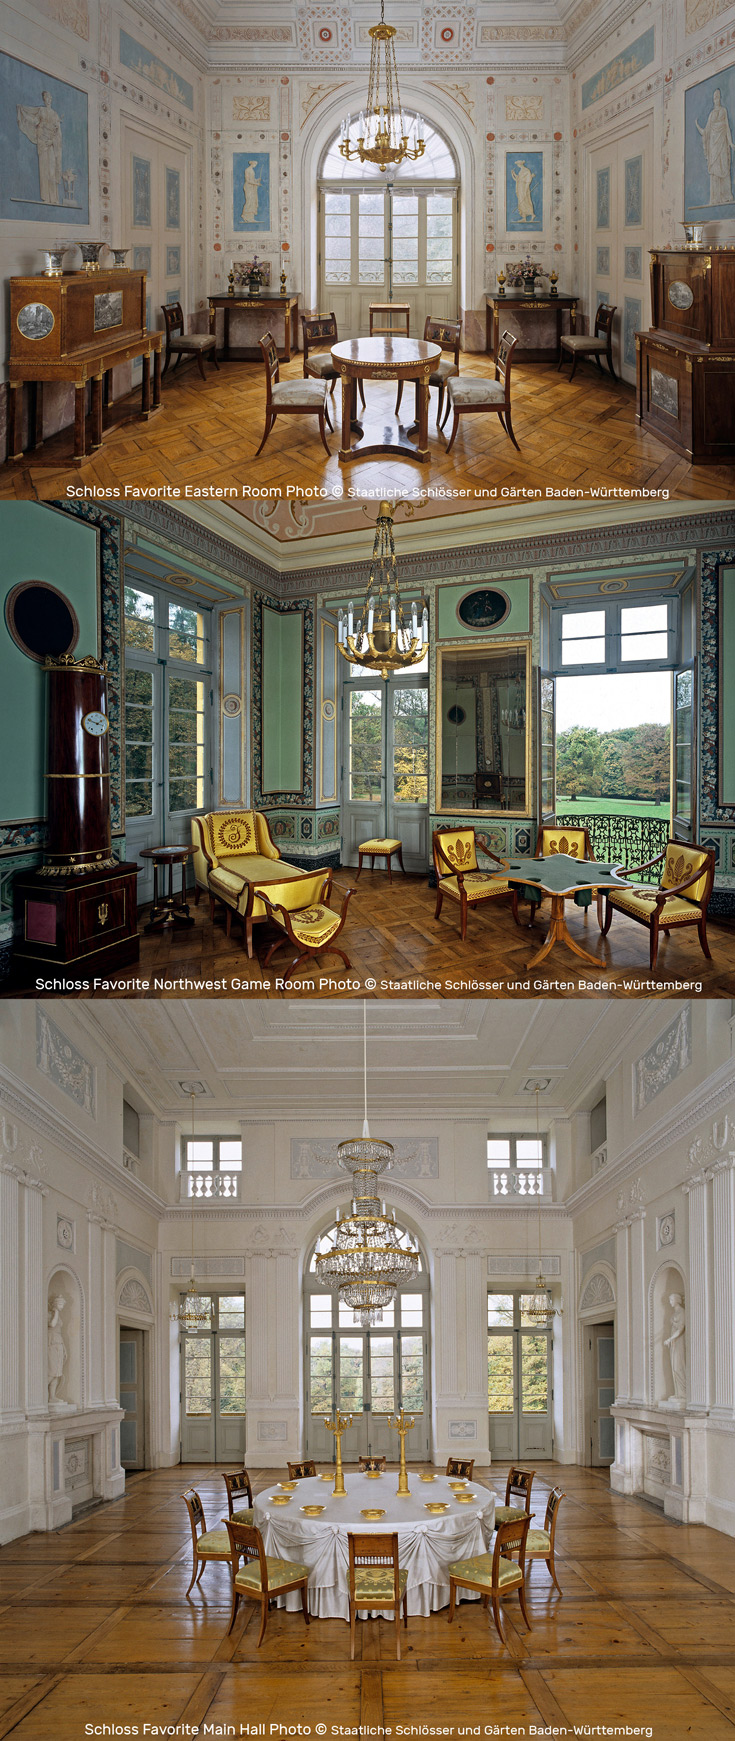 German Examples of Beautiful, Well-preserved Neoclassical Interiors | Interior Schloss Favorite Photos by Staatliche Schlösser und Gärten Baden-Württemberg